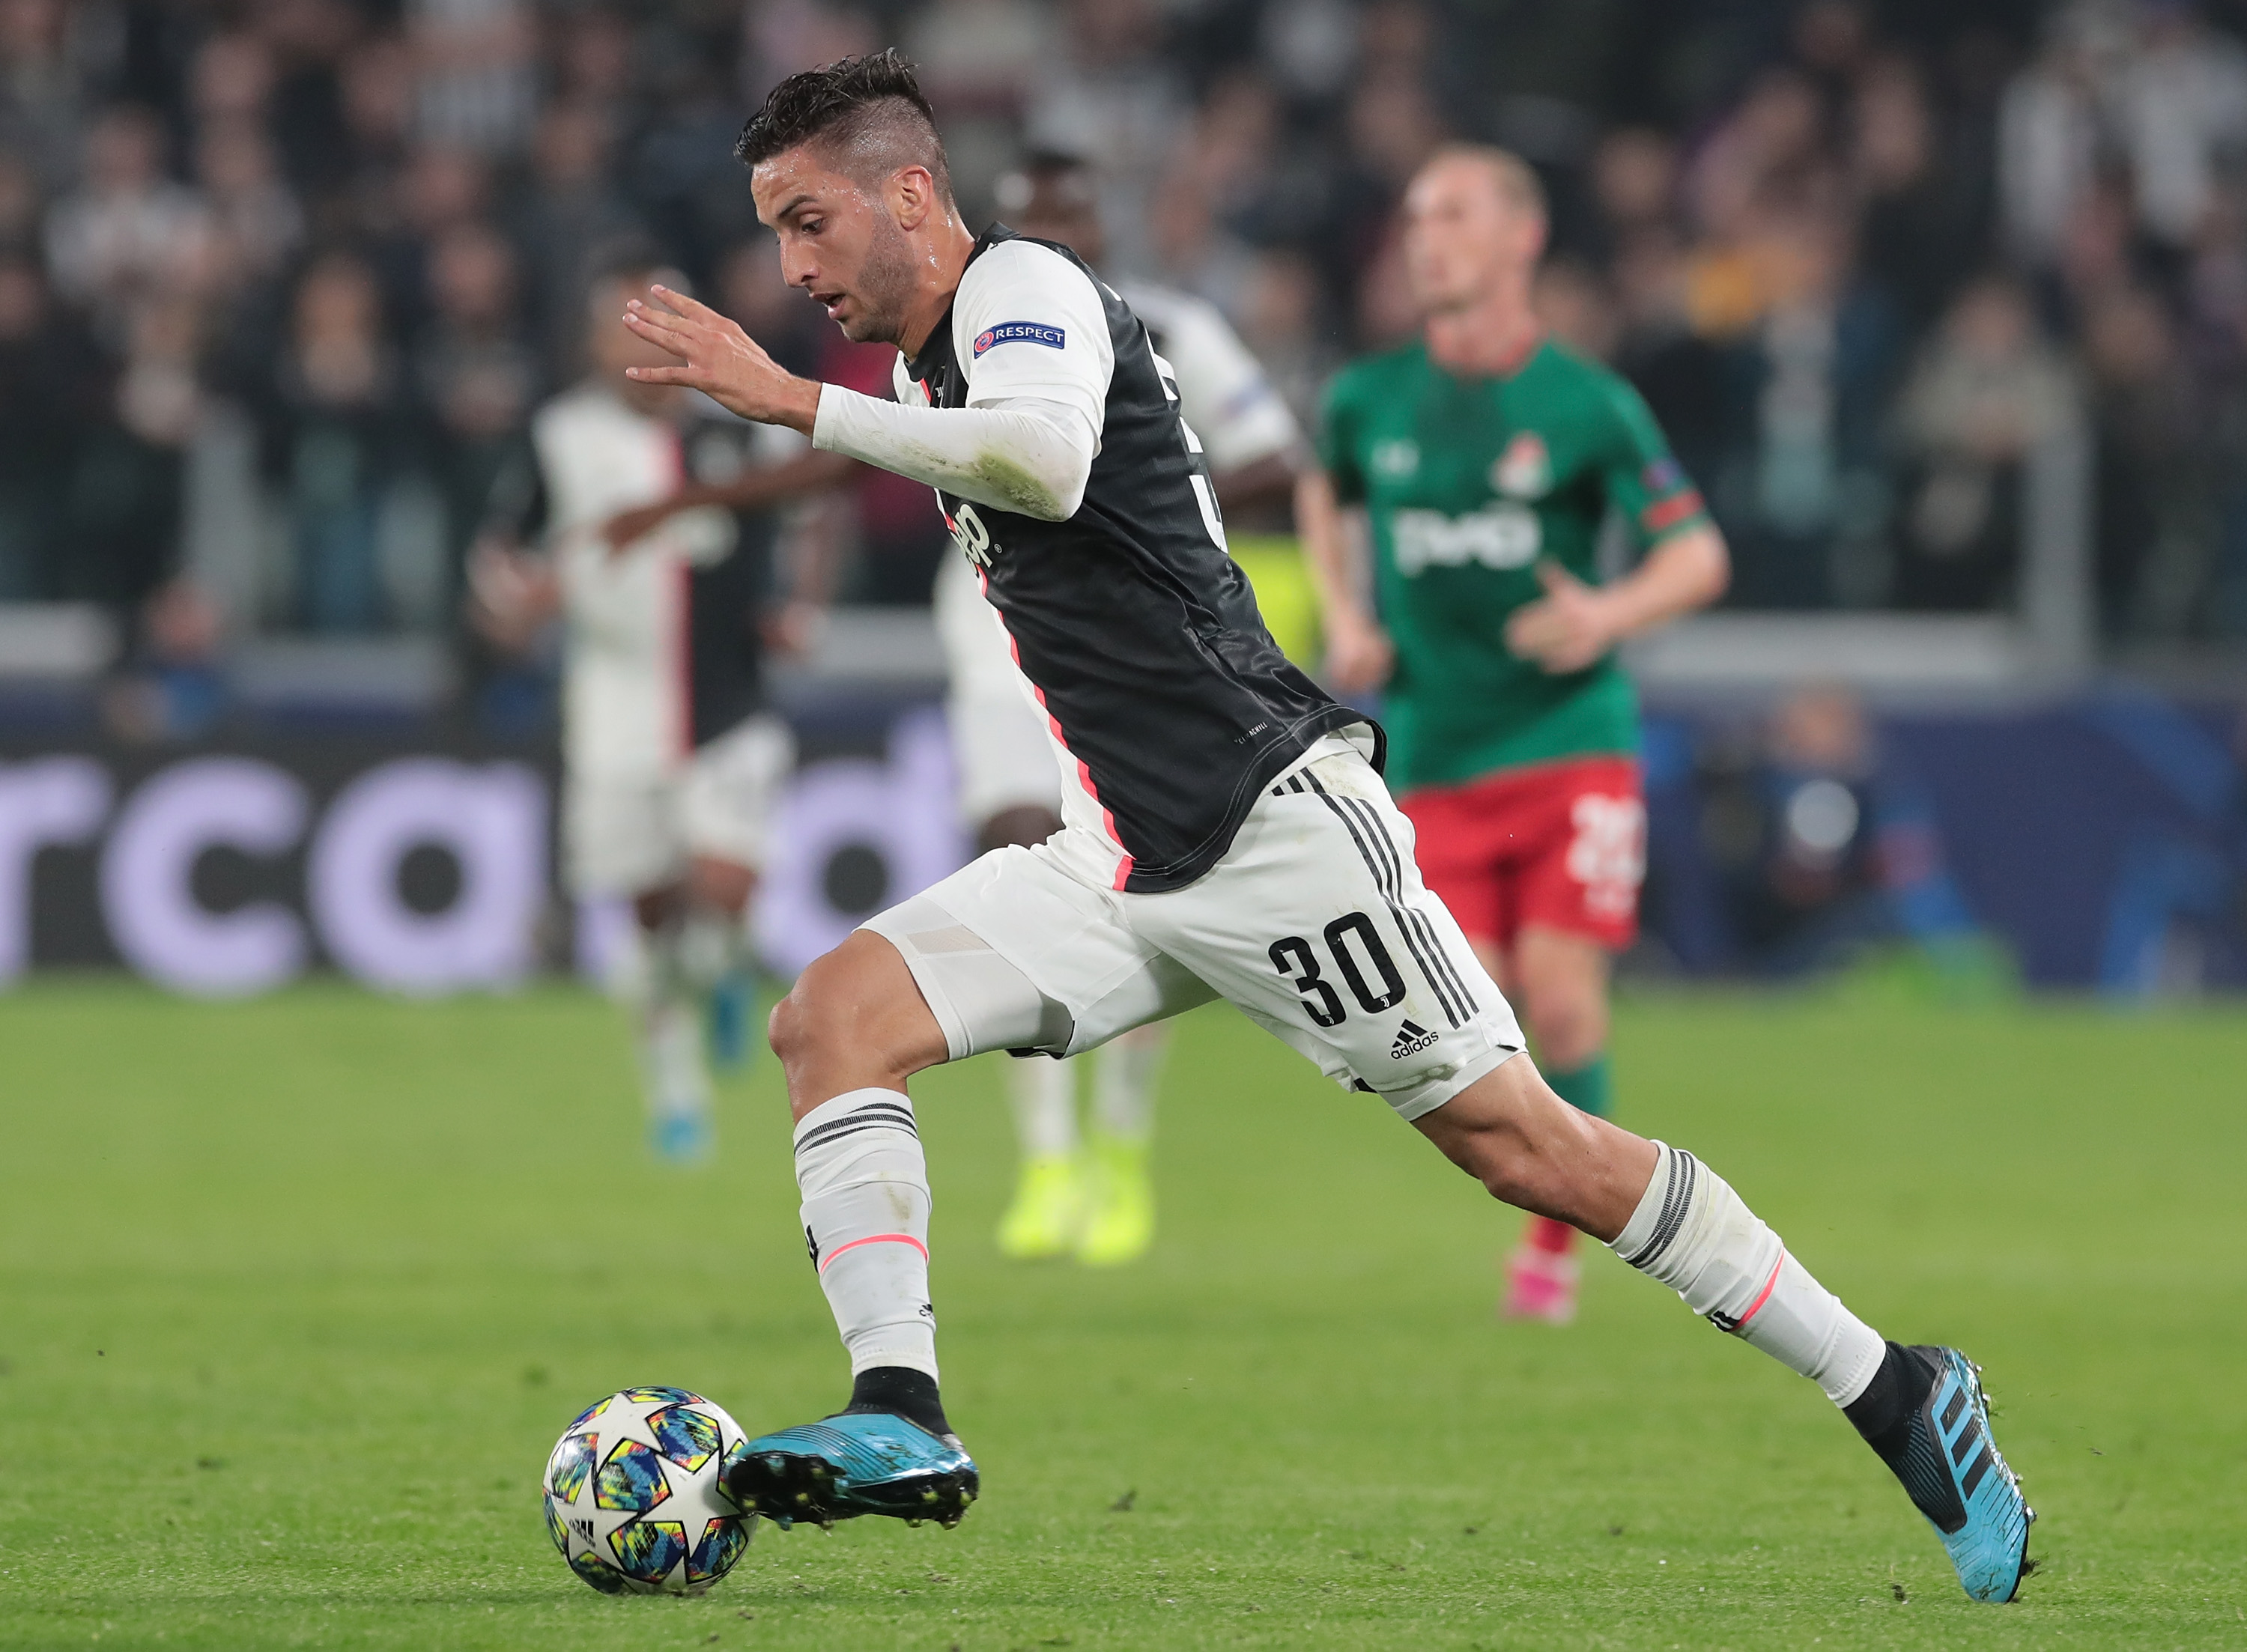 TURIN, ITALY - OCTOBER 22: Rodrigo Bentancur of Juventus in action during the UEFA Champions League group D match between Juventus and Lokomotiv Moskva at Allianz Stadium on October 22, 2019 in Turin, Italy. (Photo by Emilio Andreoli/Getty Images)